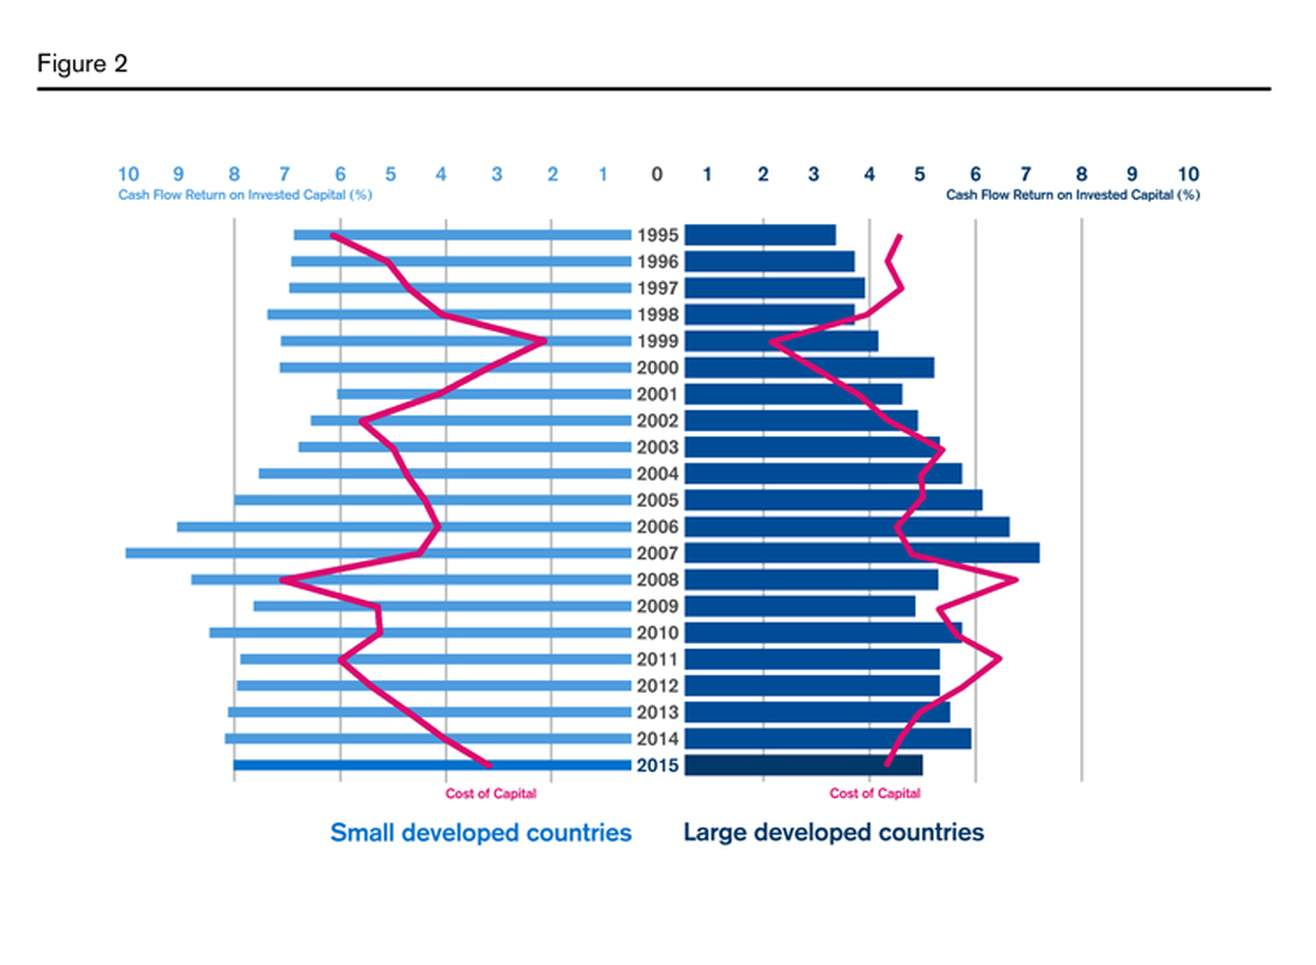 Small developed countries have higher CFROI than large developed (ex. The US market)